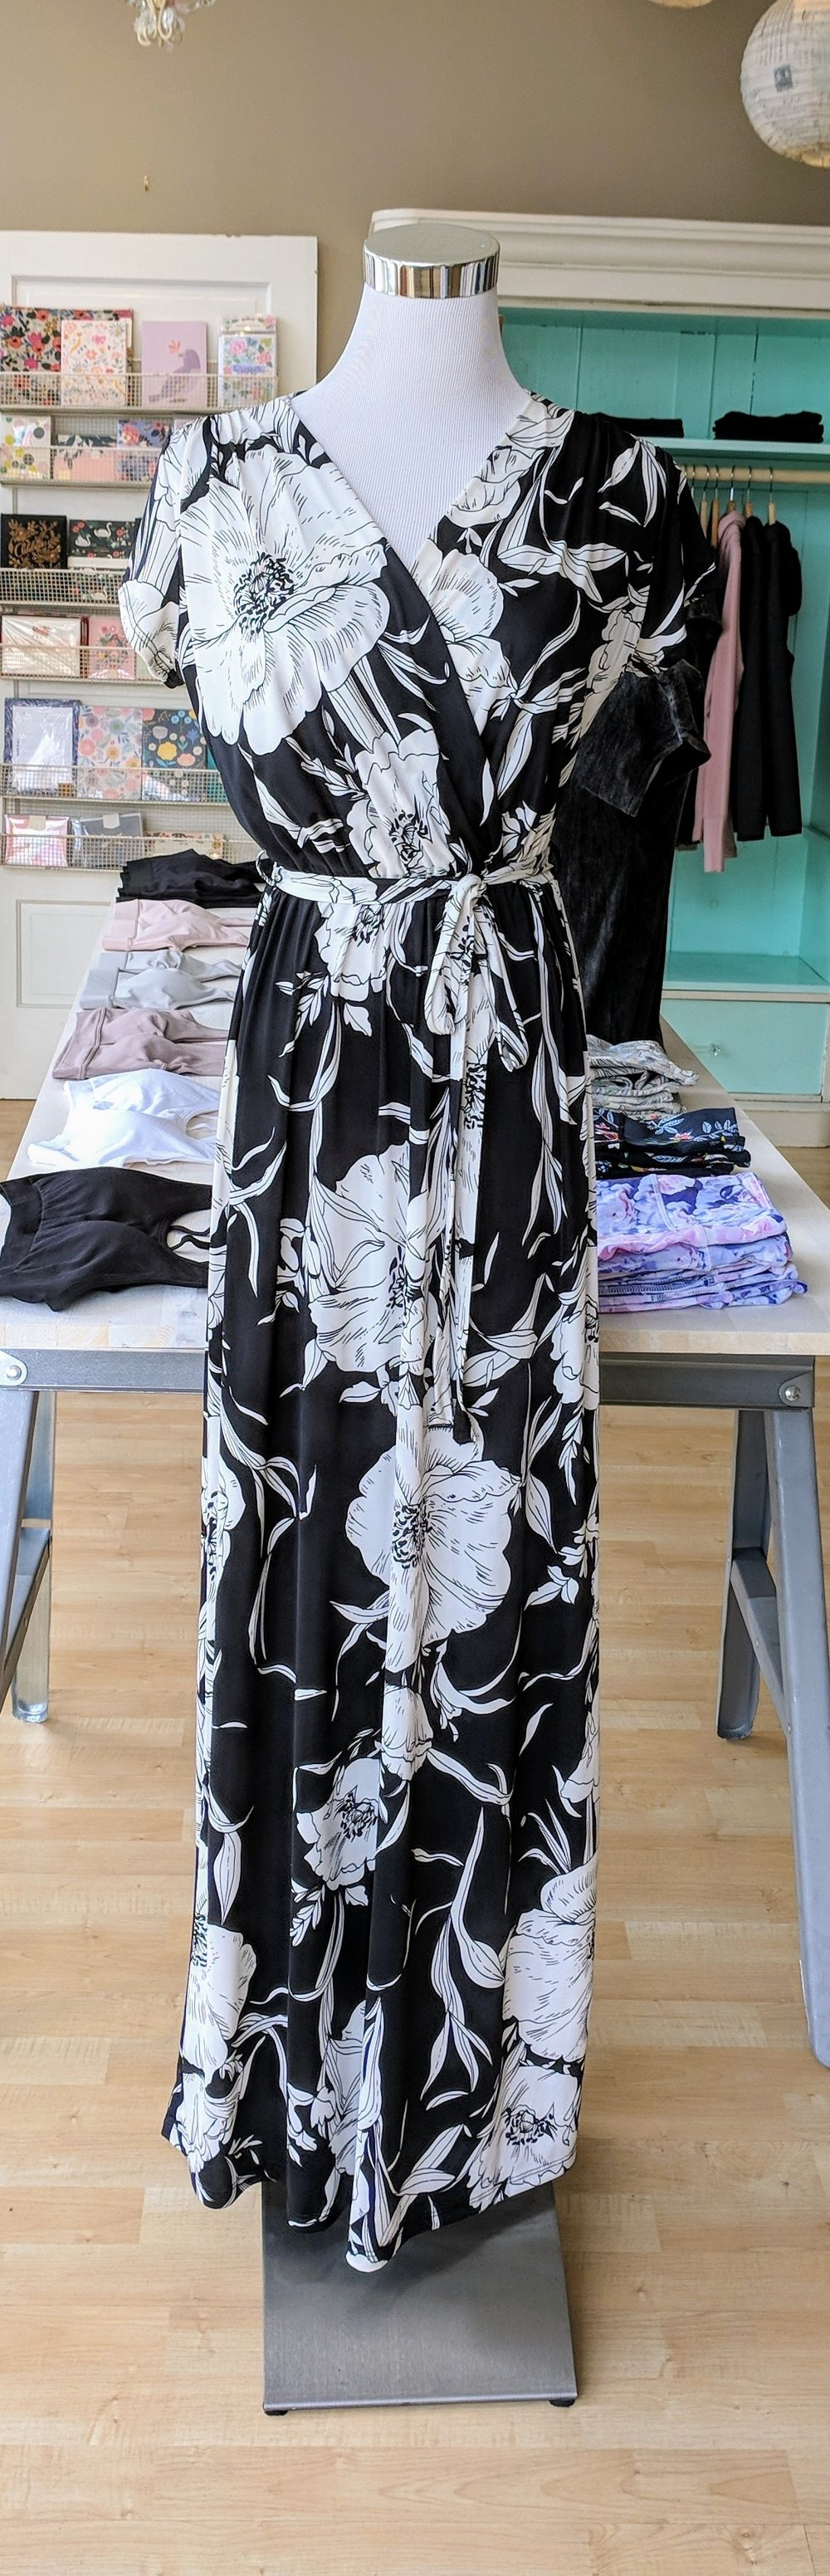 Black and White Floral Wrap Maxi Dress $54